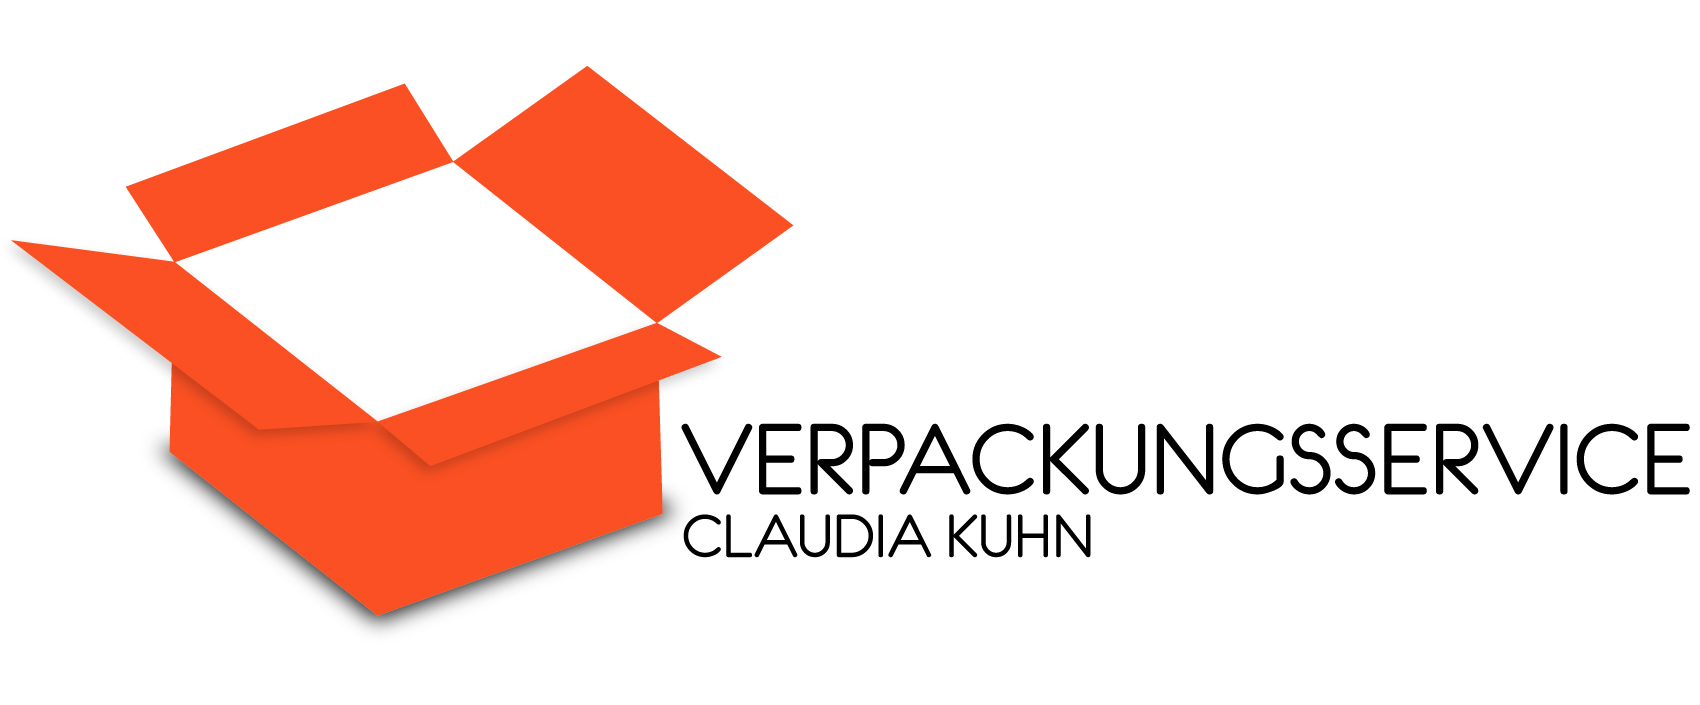 Verpackungsservice Claudia Kuhn